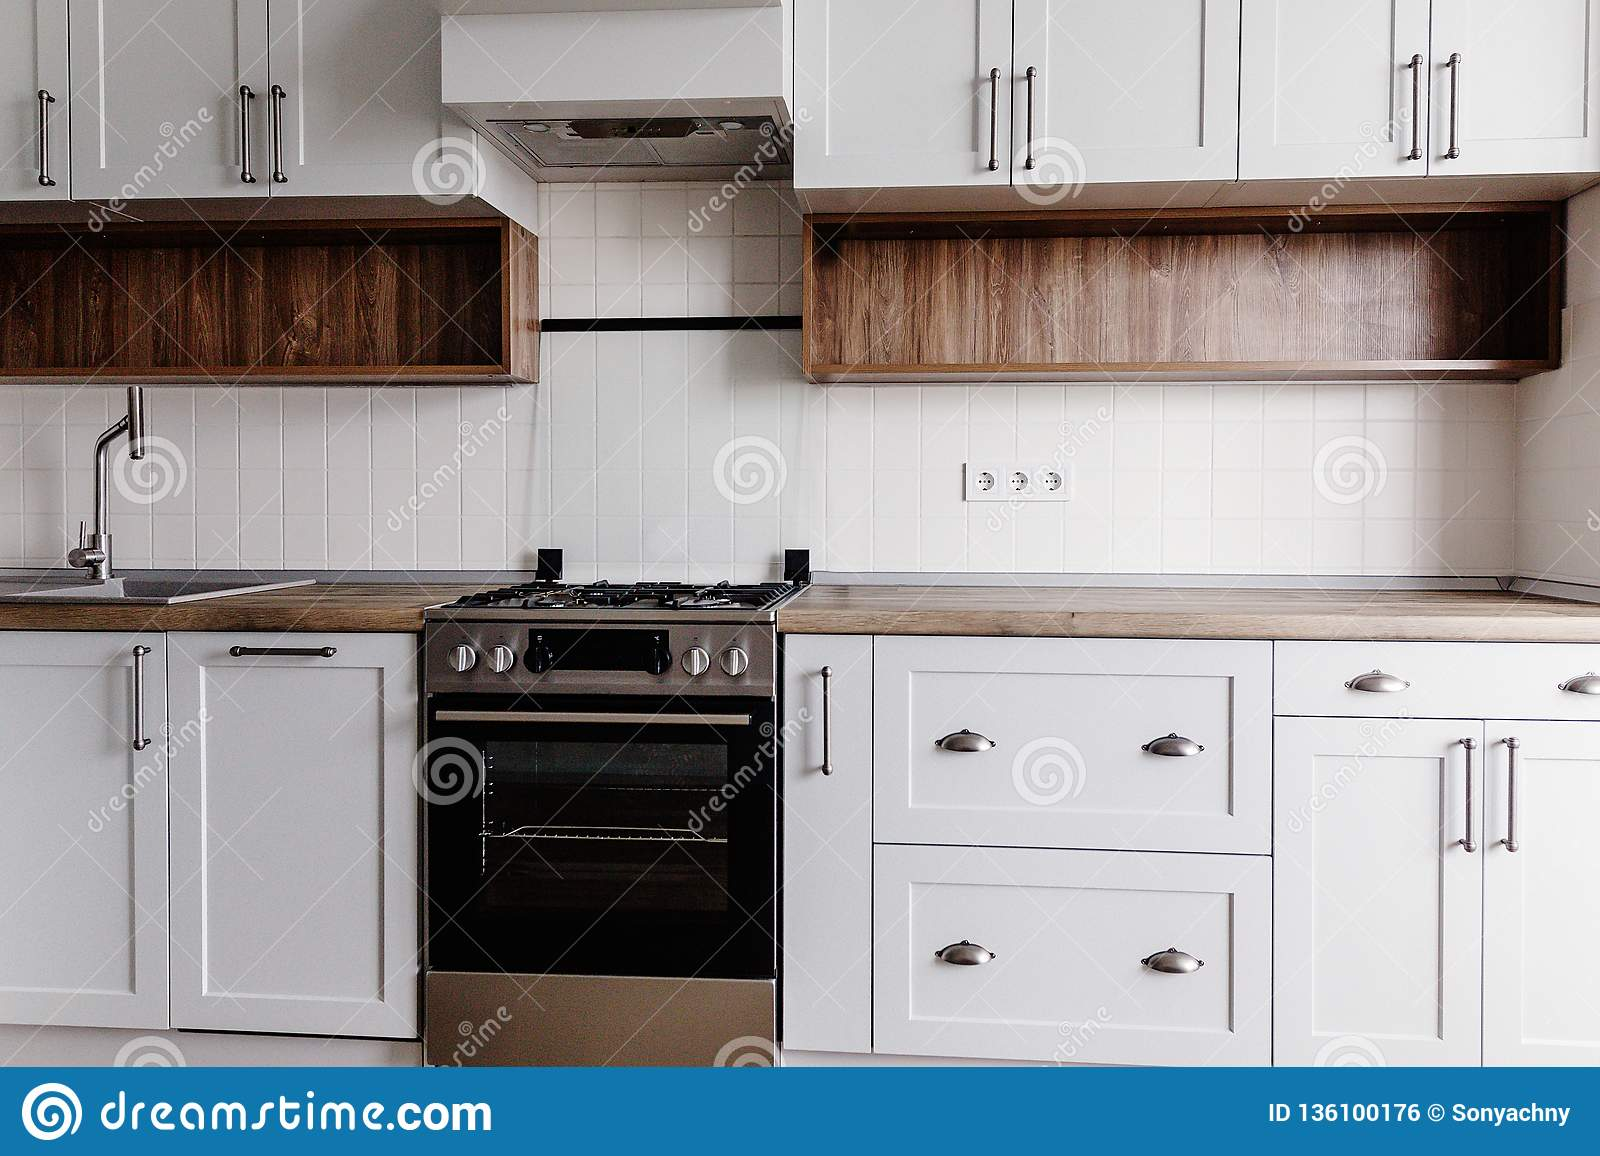 Peachy Luxury Modern Kitchen Furniture In Grey Color And Steel Oven Short Links Chair Design For Home Short Linksinfo